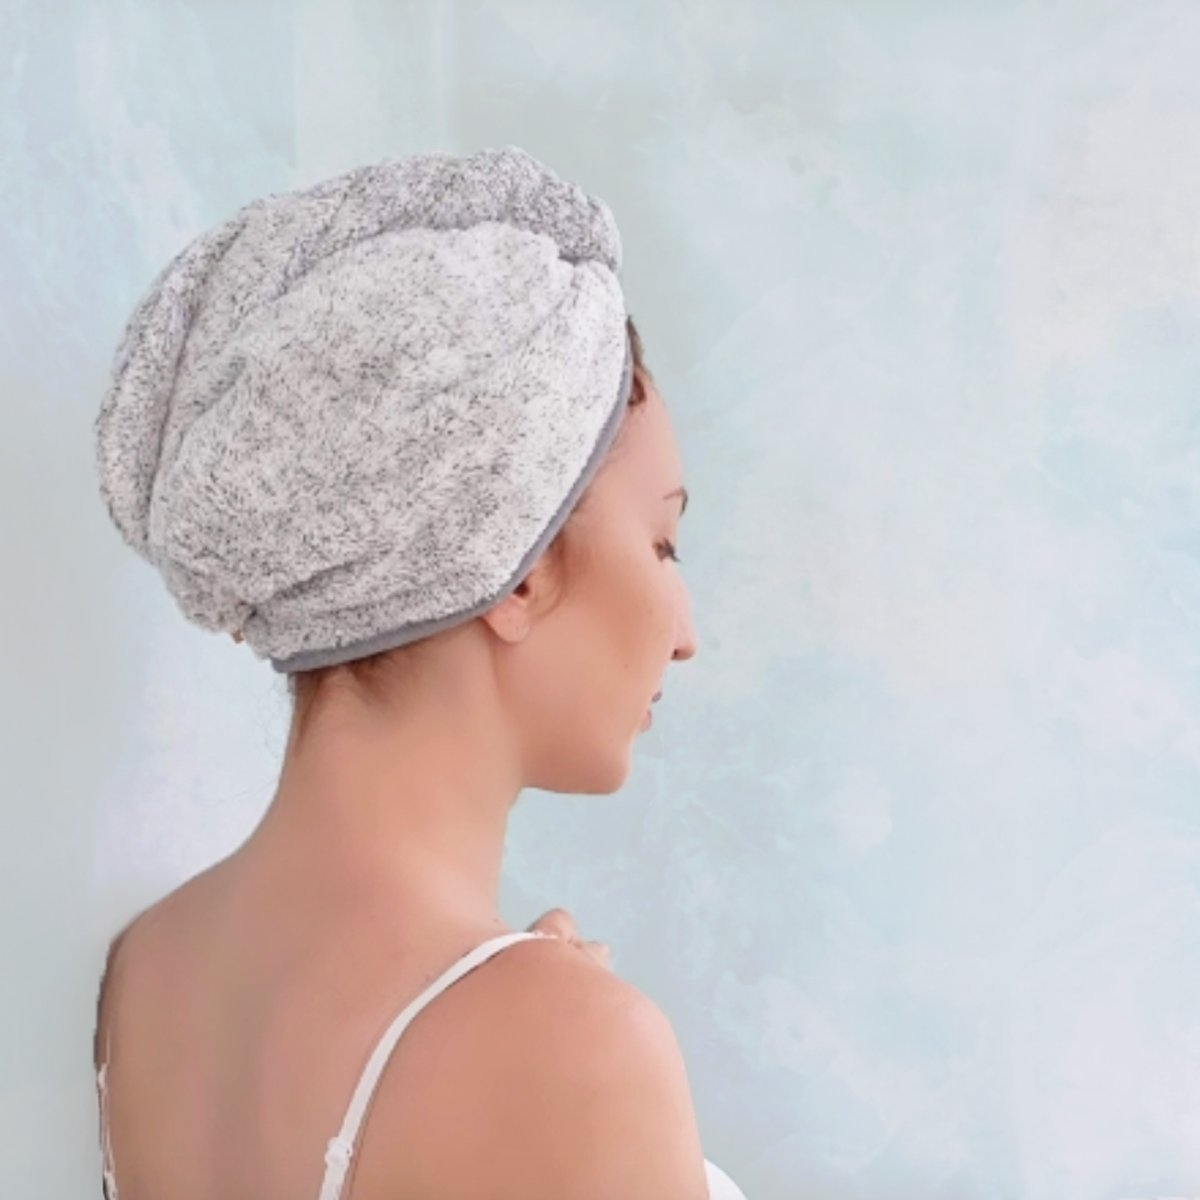 USA STOCK RAPID DRYING HAIR TOWEL-BEST PRICE-FAST SHIPPING